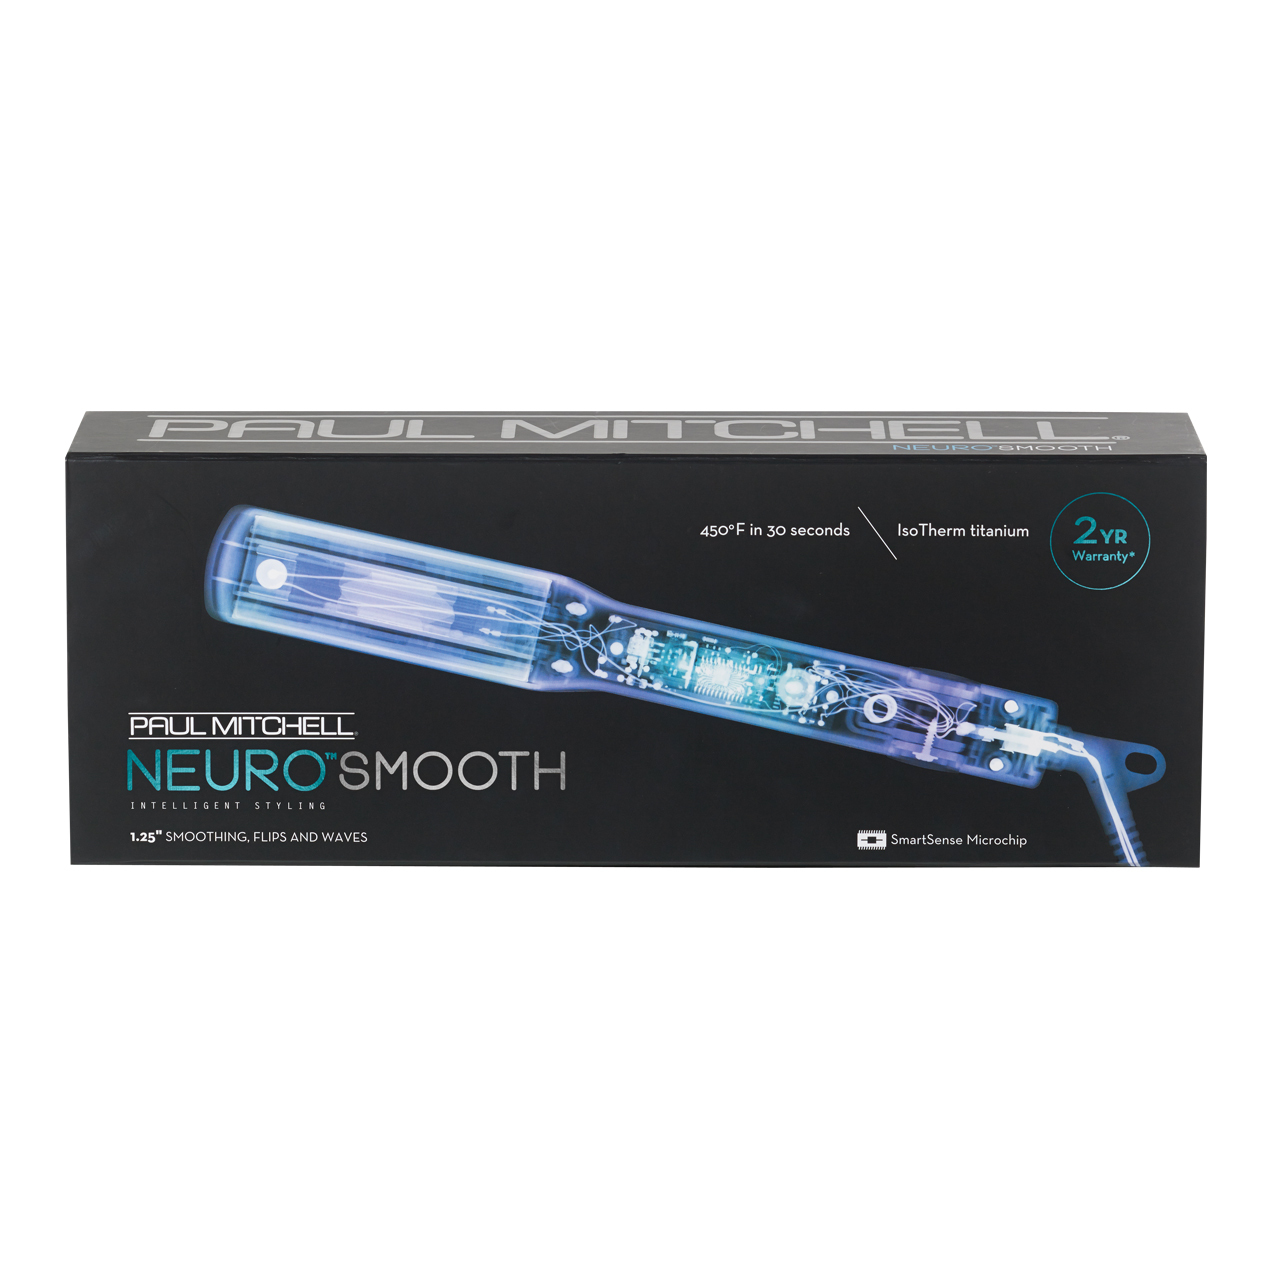 Paul Mitchell Neuro Smooth Flat Iron 1.25""